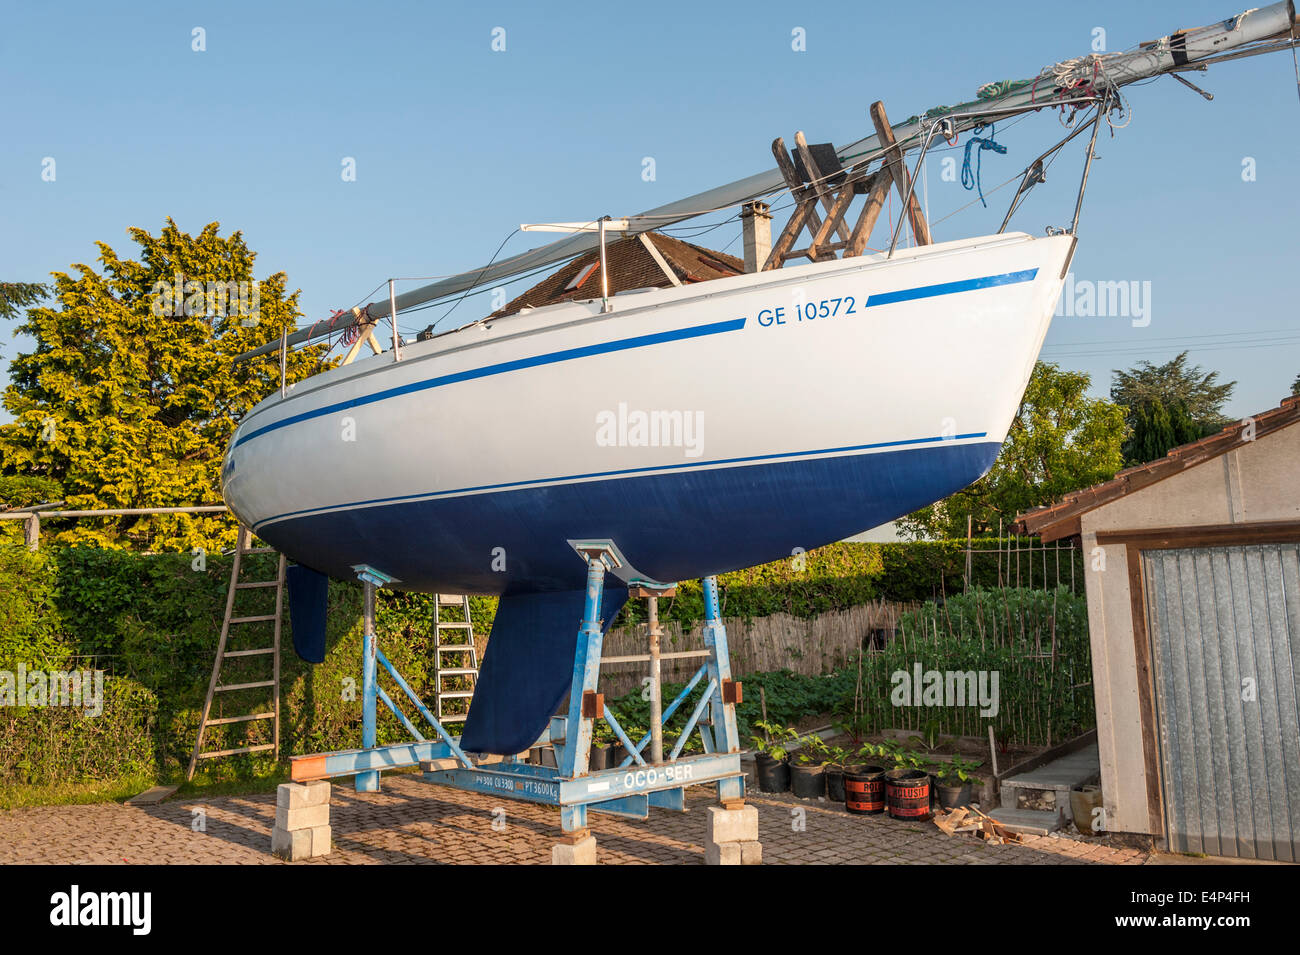 A sailing yacht in a cradle in a boatyard, after being painted with antifouling - Stock Image